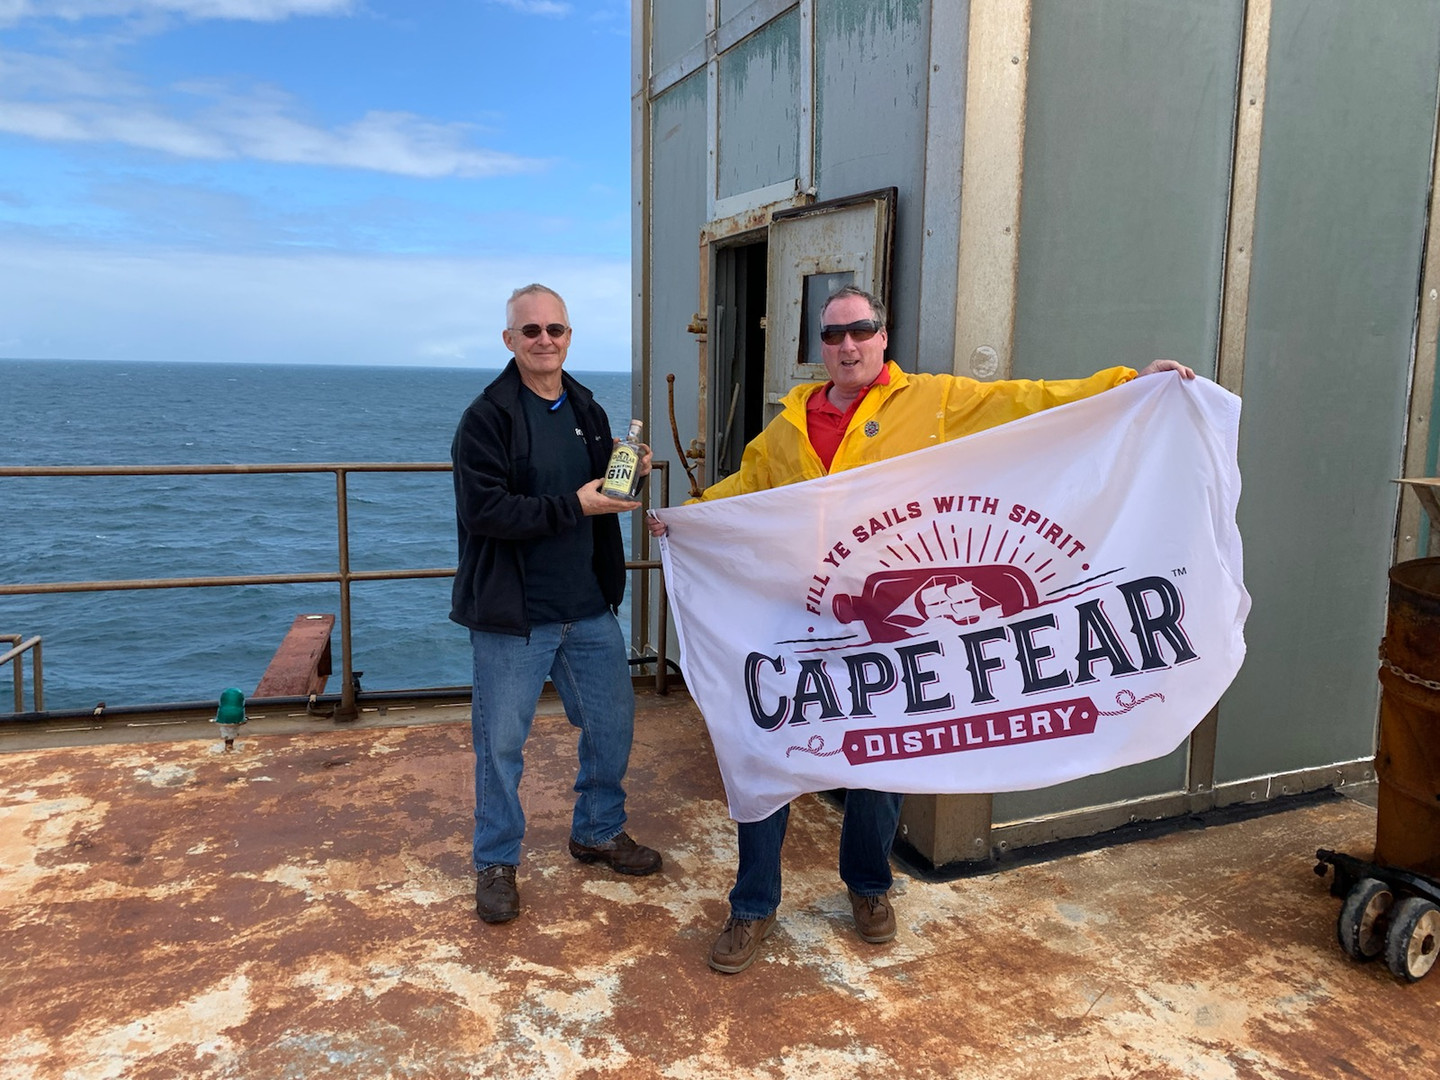 Thanks Richard!  Only Cape Fear Maritime Gin on Frying Pan Tower!